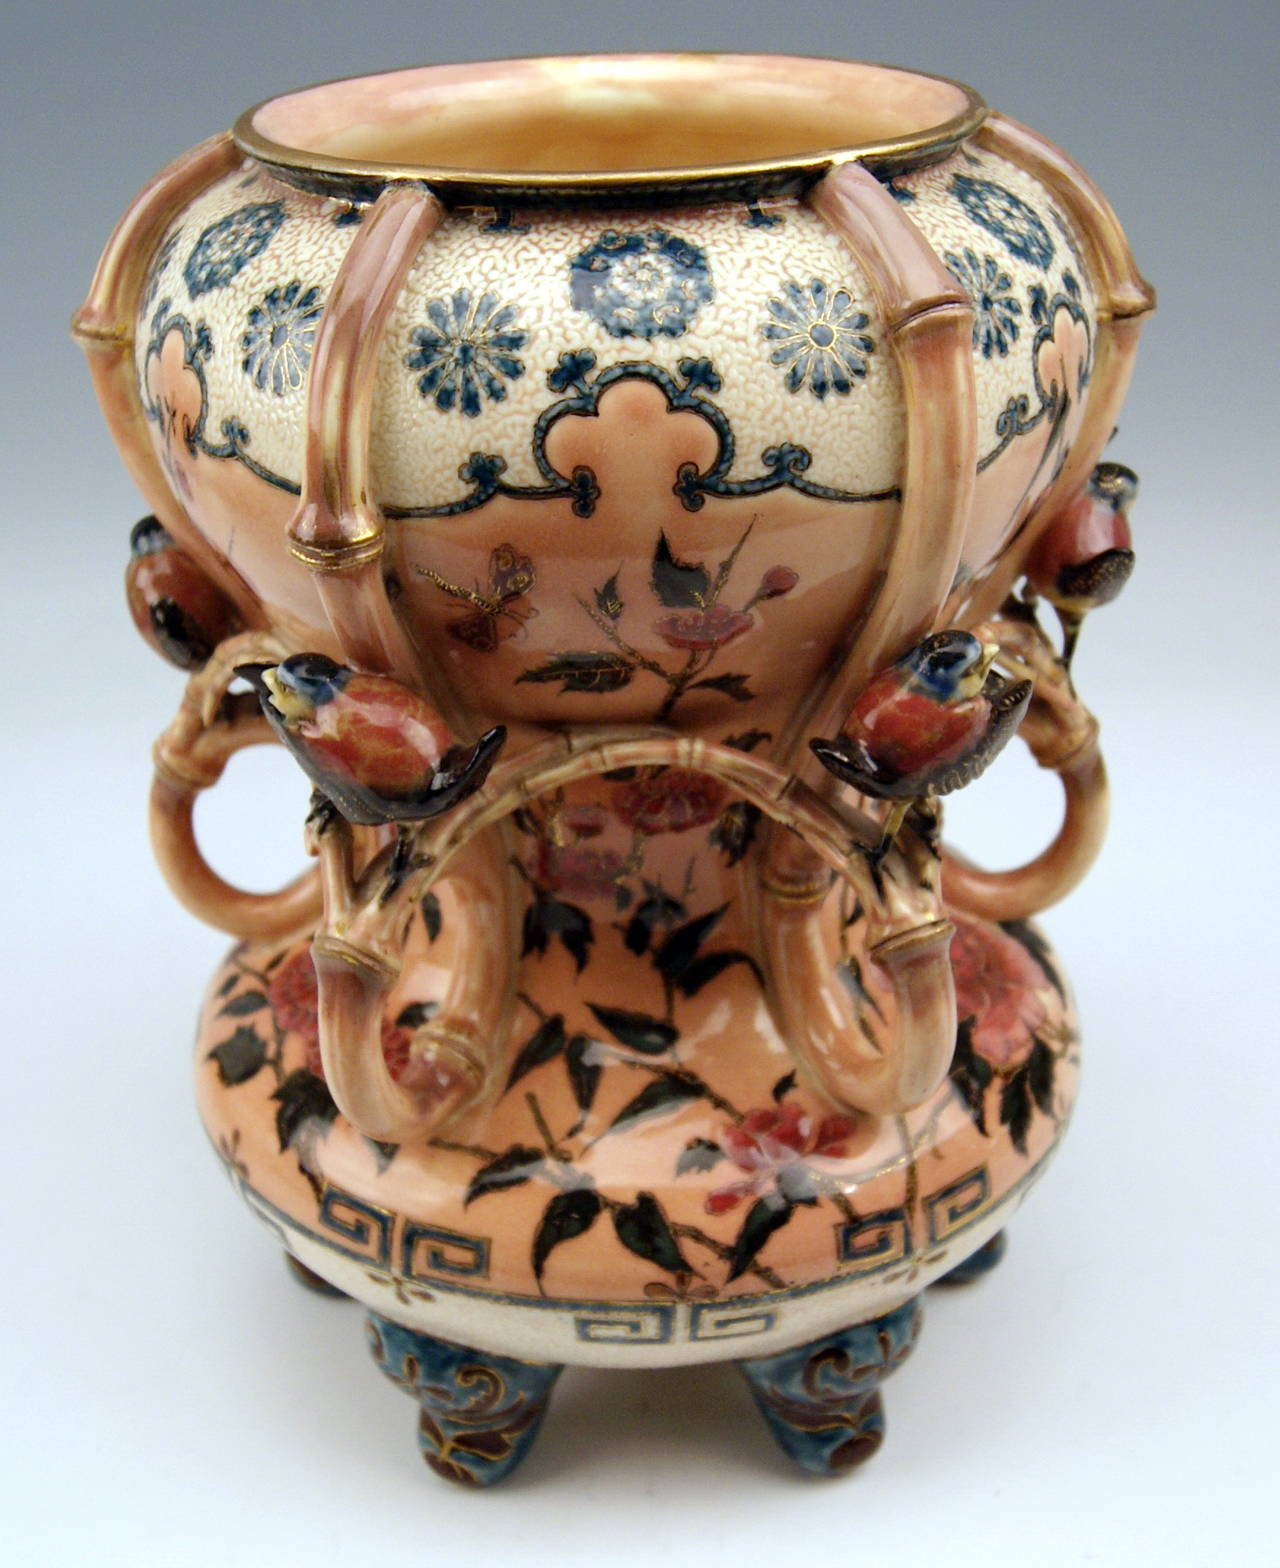 Zsolnay Vintage and Rare Vase with Birds Abundantly Decorated, circa 1882-1885 7